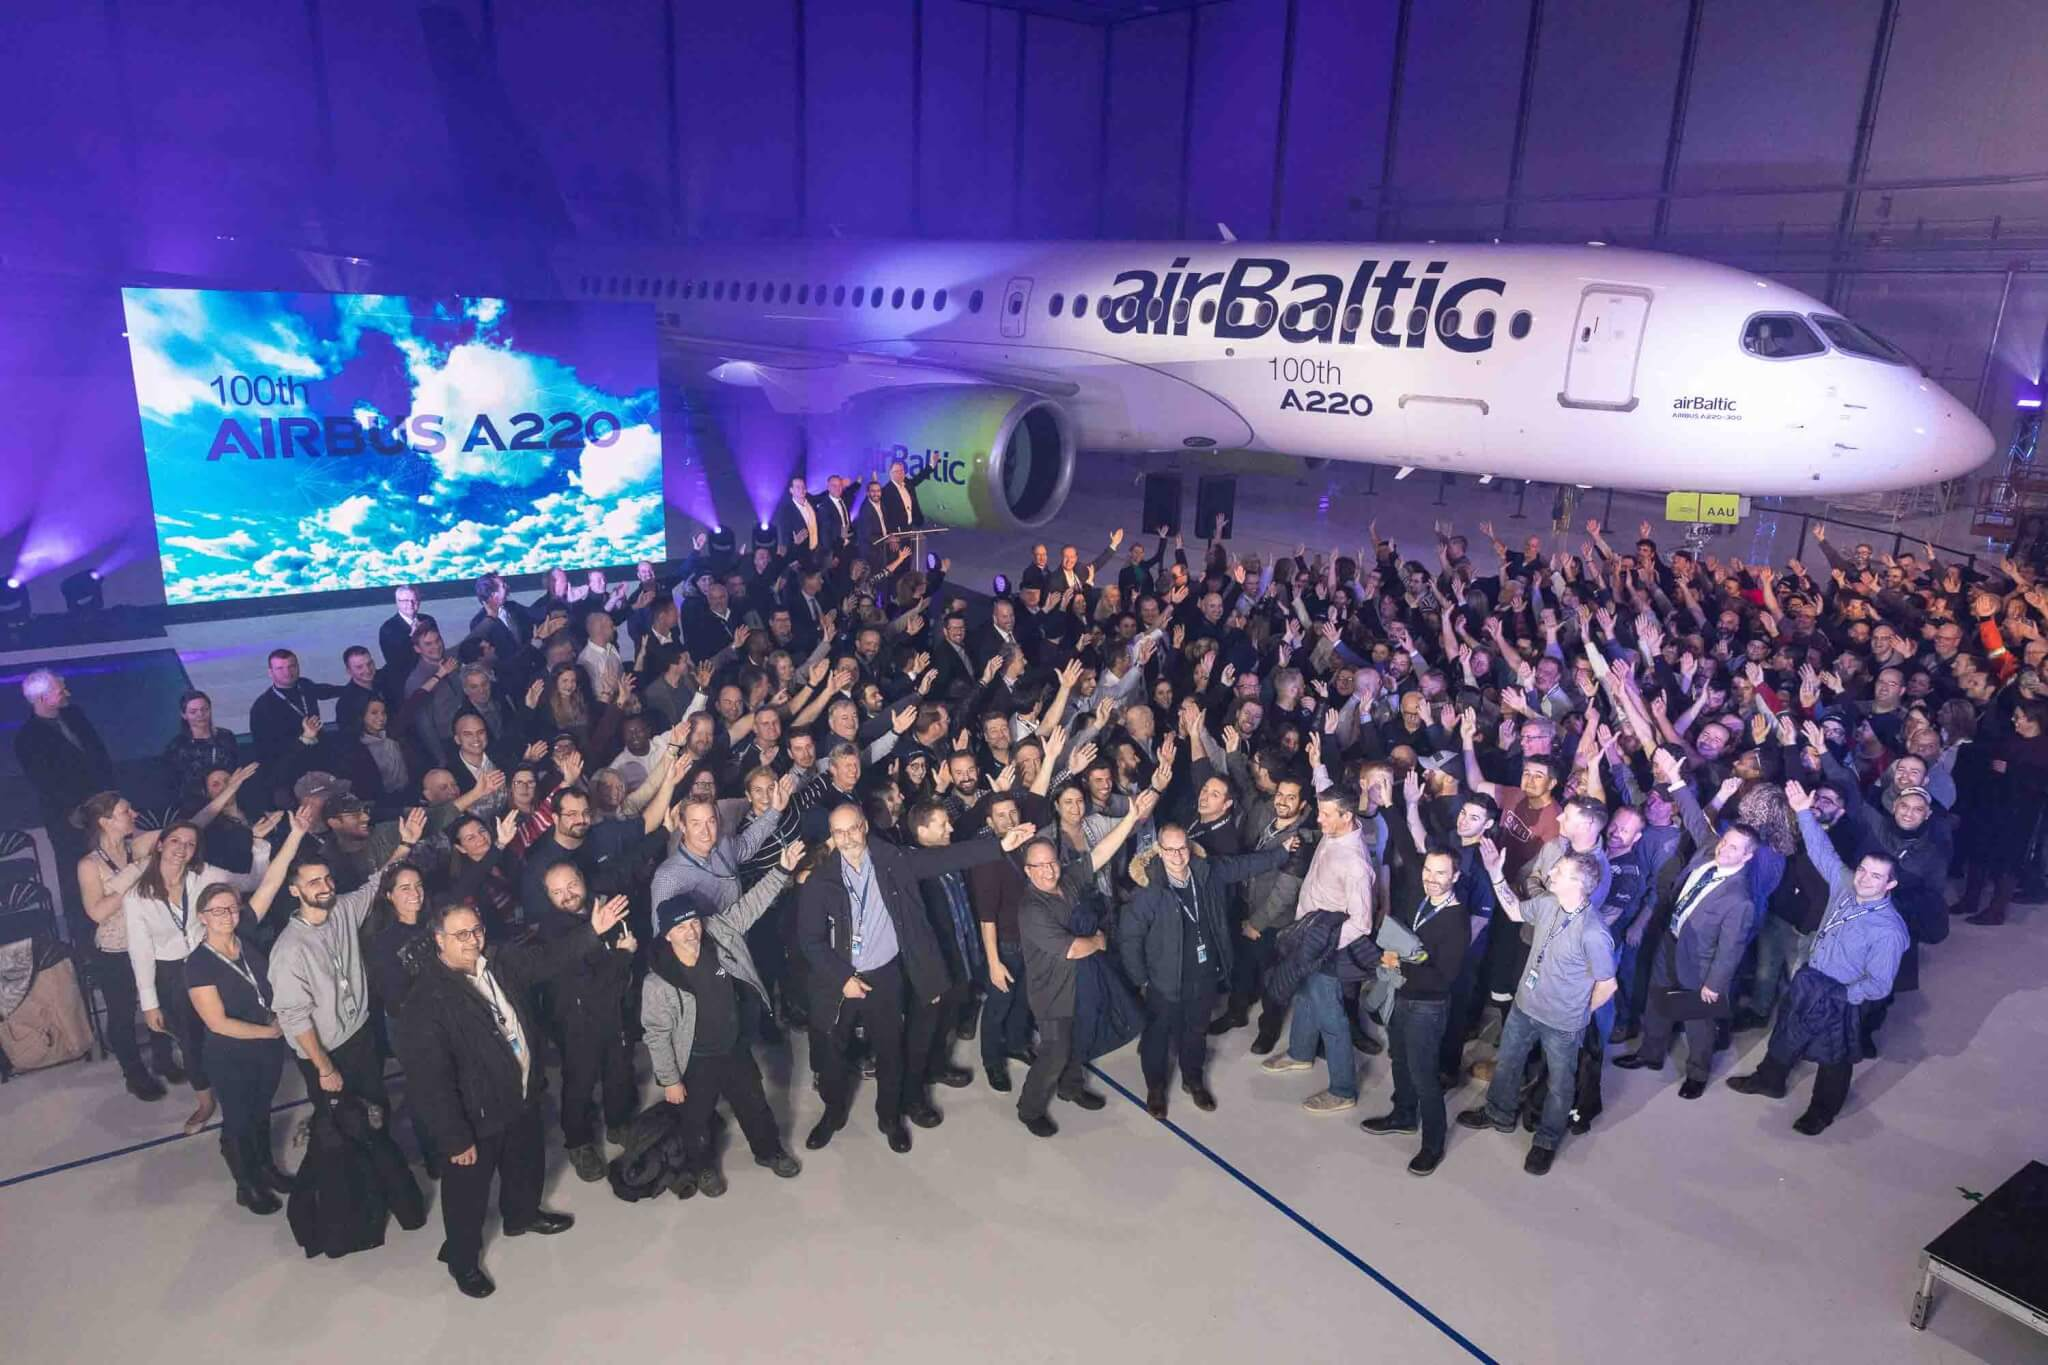 Airbus rolls out 100th A220 aircraft produced